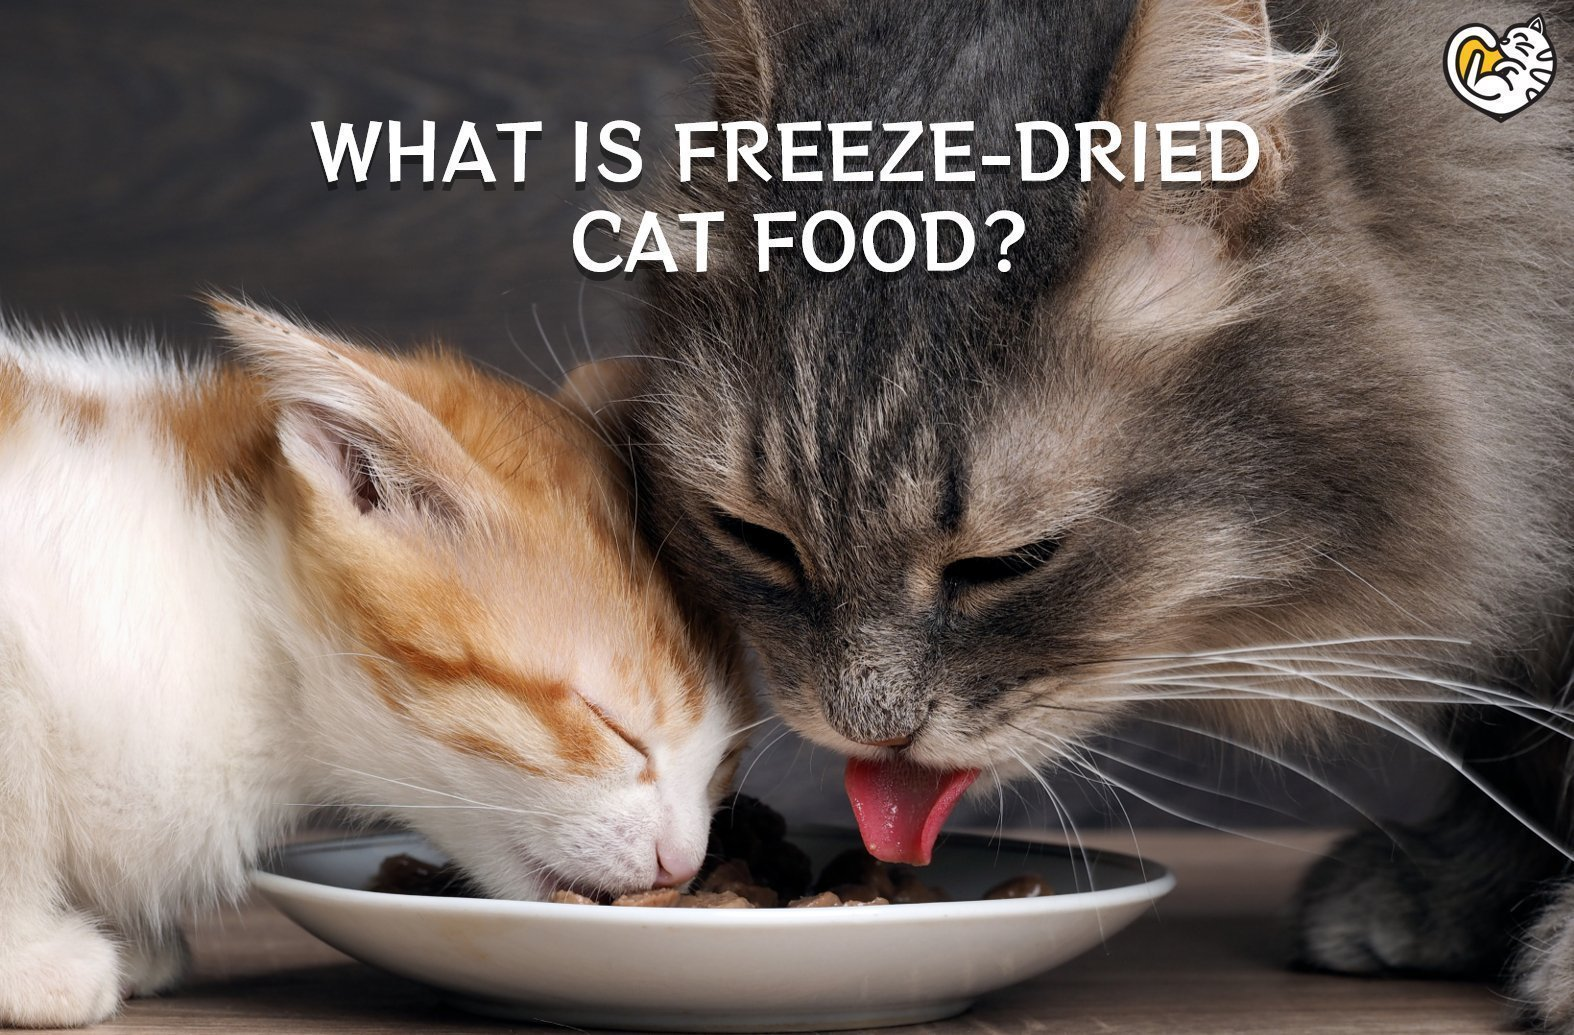 WHAT IS FREEZE-DRIED CAT FOOD?